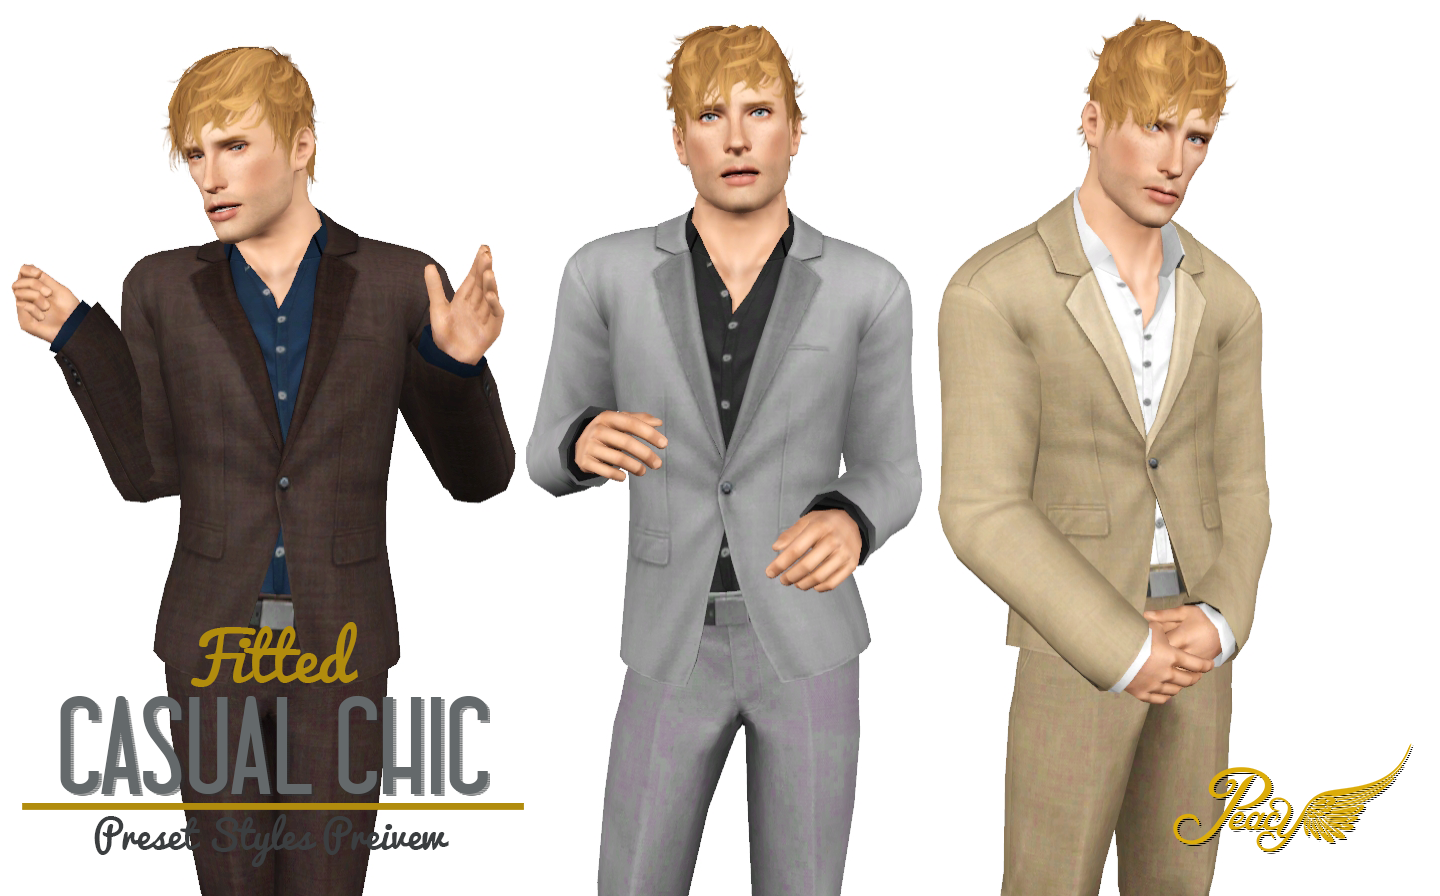 Fitted Casual Chic - Single Button Jacket by Peacemaker ic